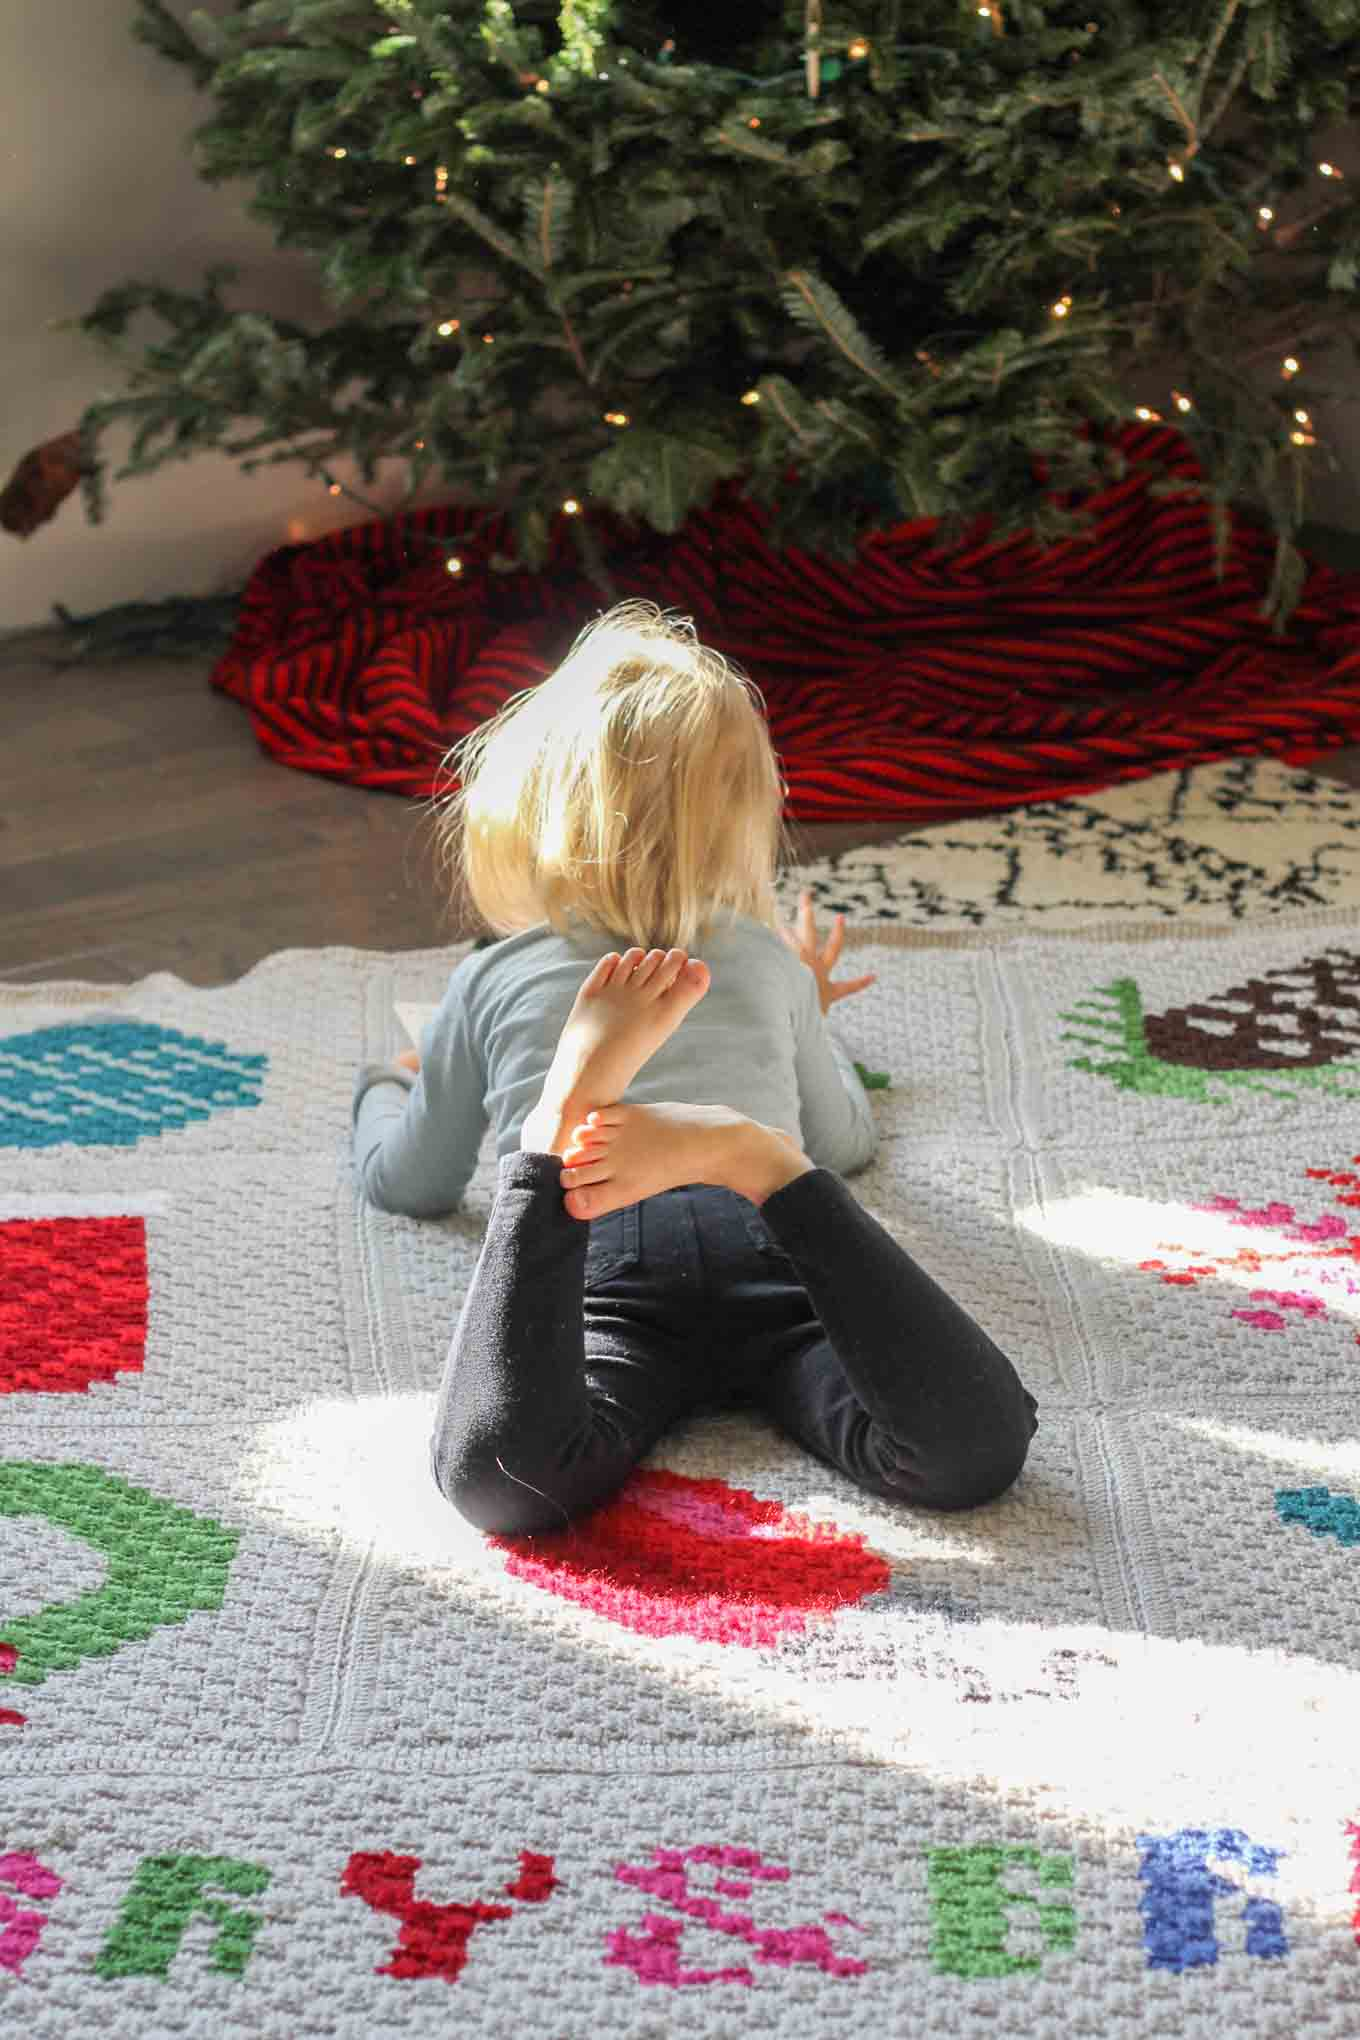 Make an heirloom your family can snuggle up with year after year with this free corner to corner crochet Christmas afghan pattern! These modern c2c Christmas graphs make perfect winter pillows too. Crocheted with Lion Brand Vanna's Choice yarn.